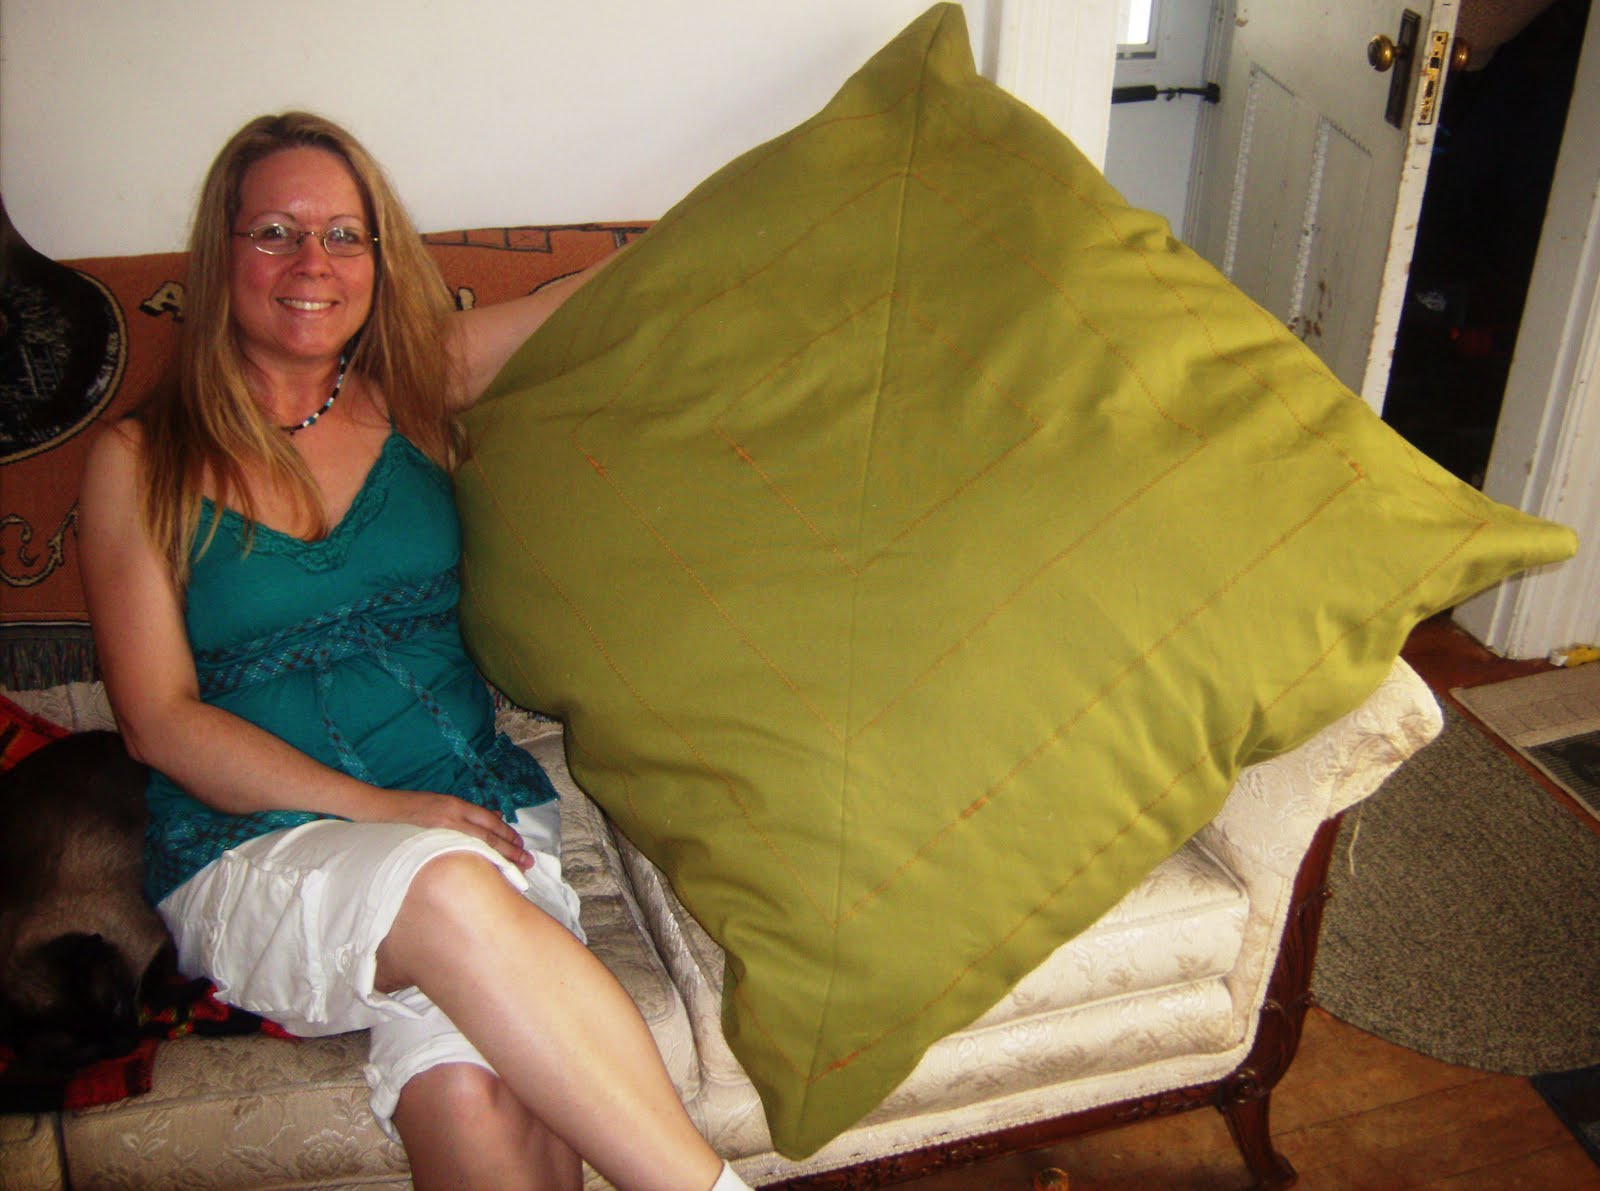 Floor Pillow To Watch Tv : Gina sCustomCreations: Paul s Giant Floor Pillow